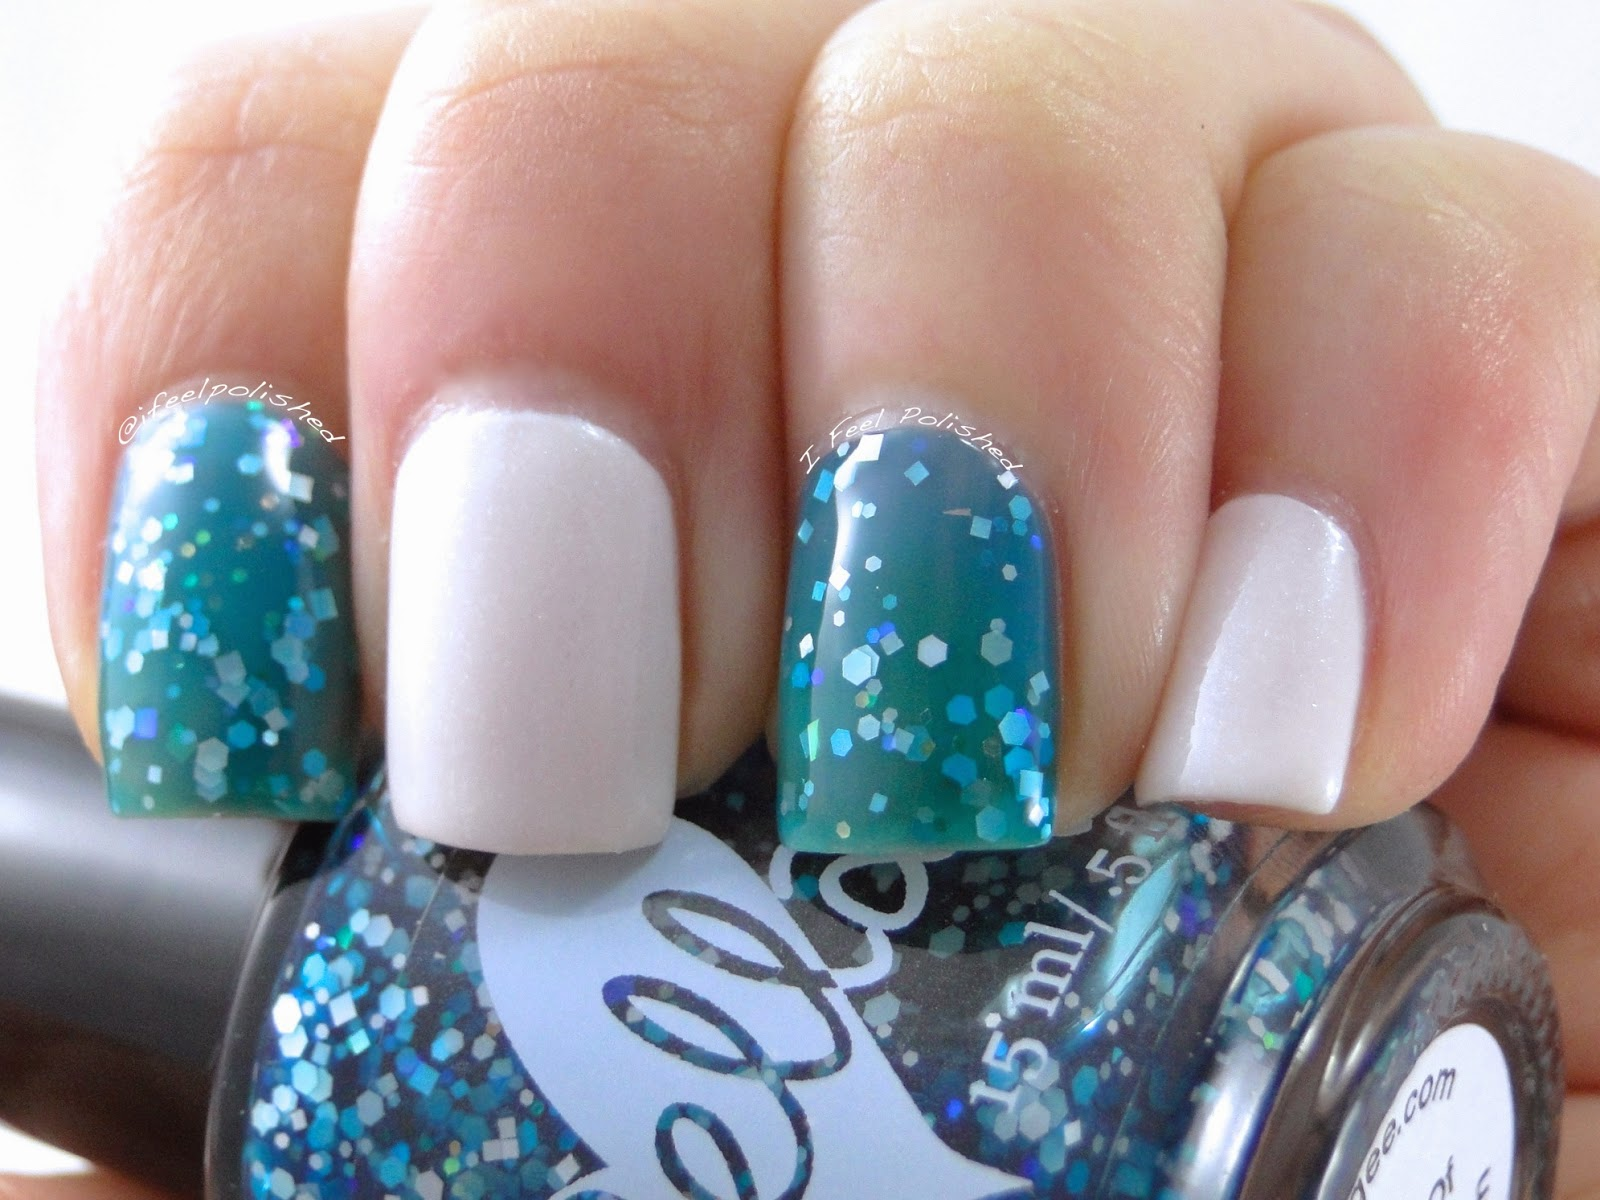 ellagee Blue-Eyed Girl Lacquer Duo